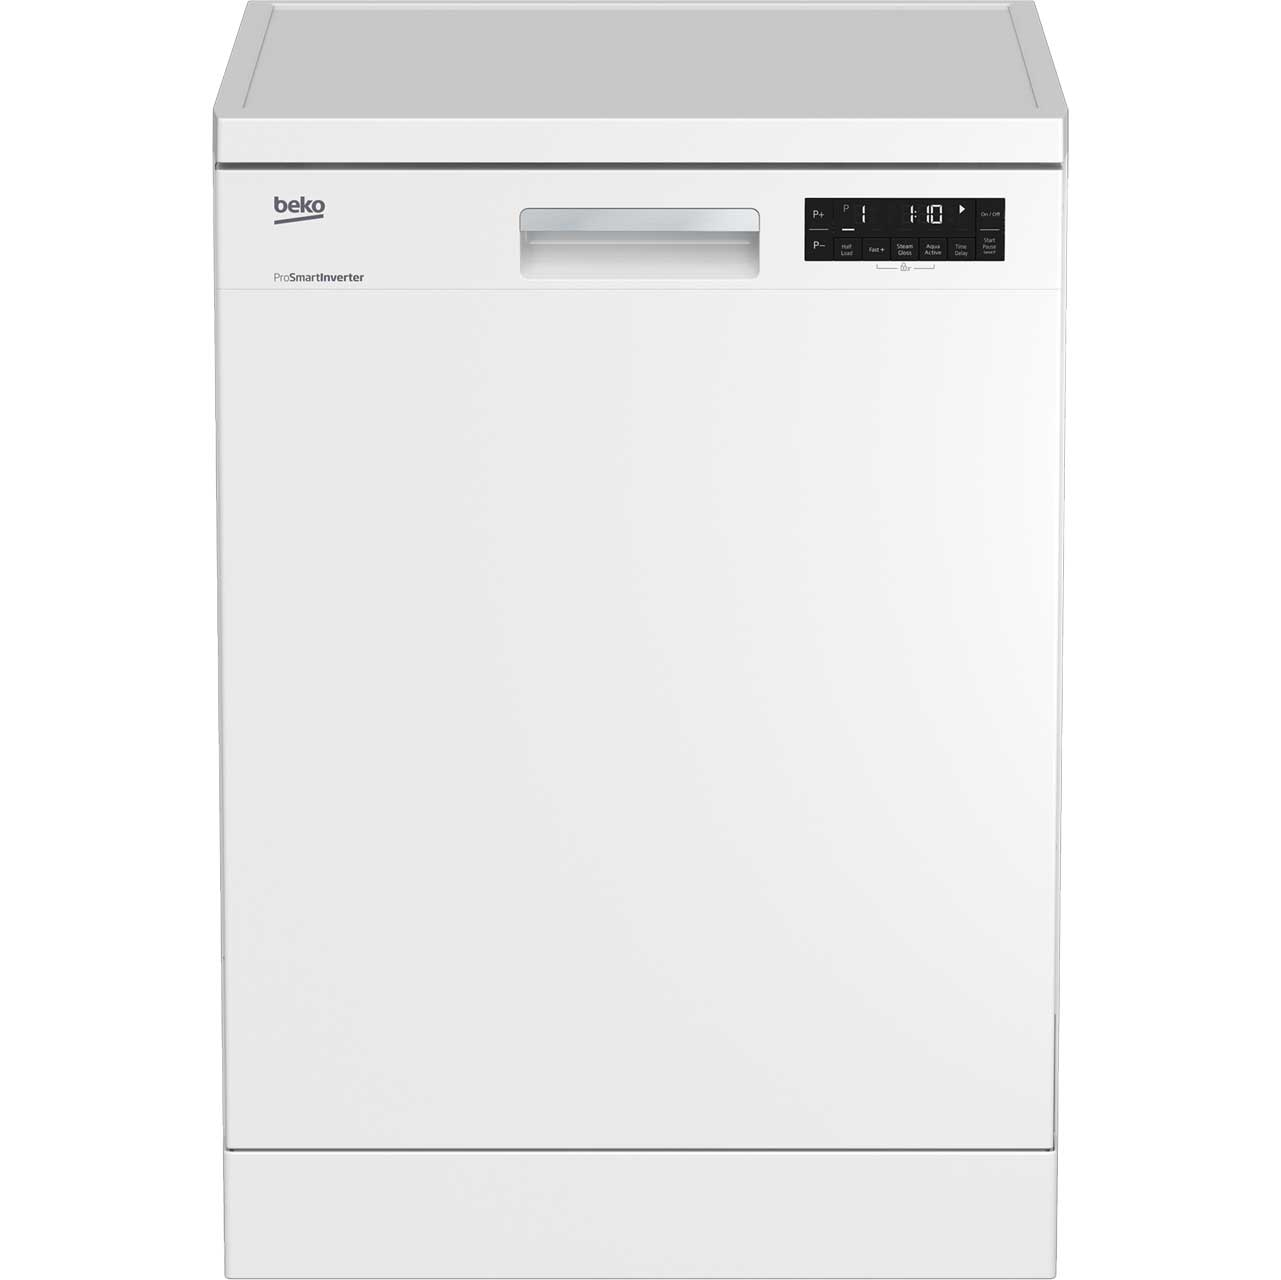 Beko DFN28R21W Free Standing Dishwasher in White